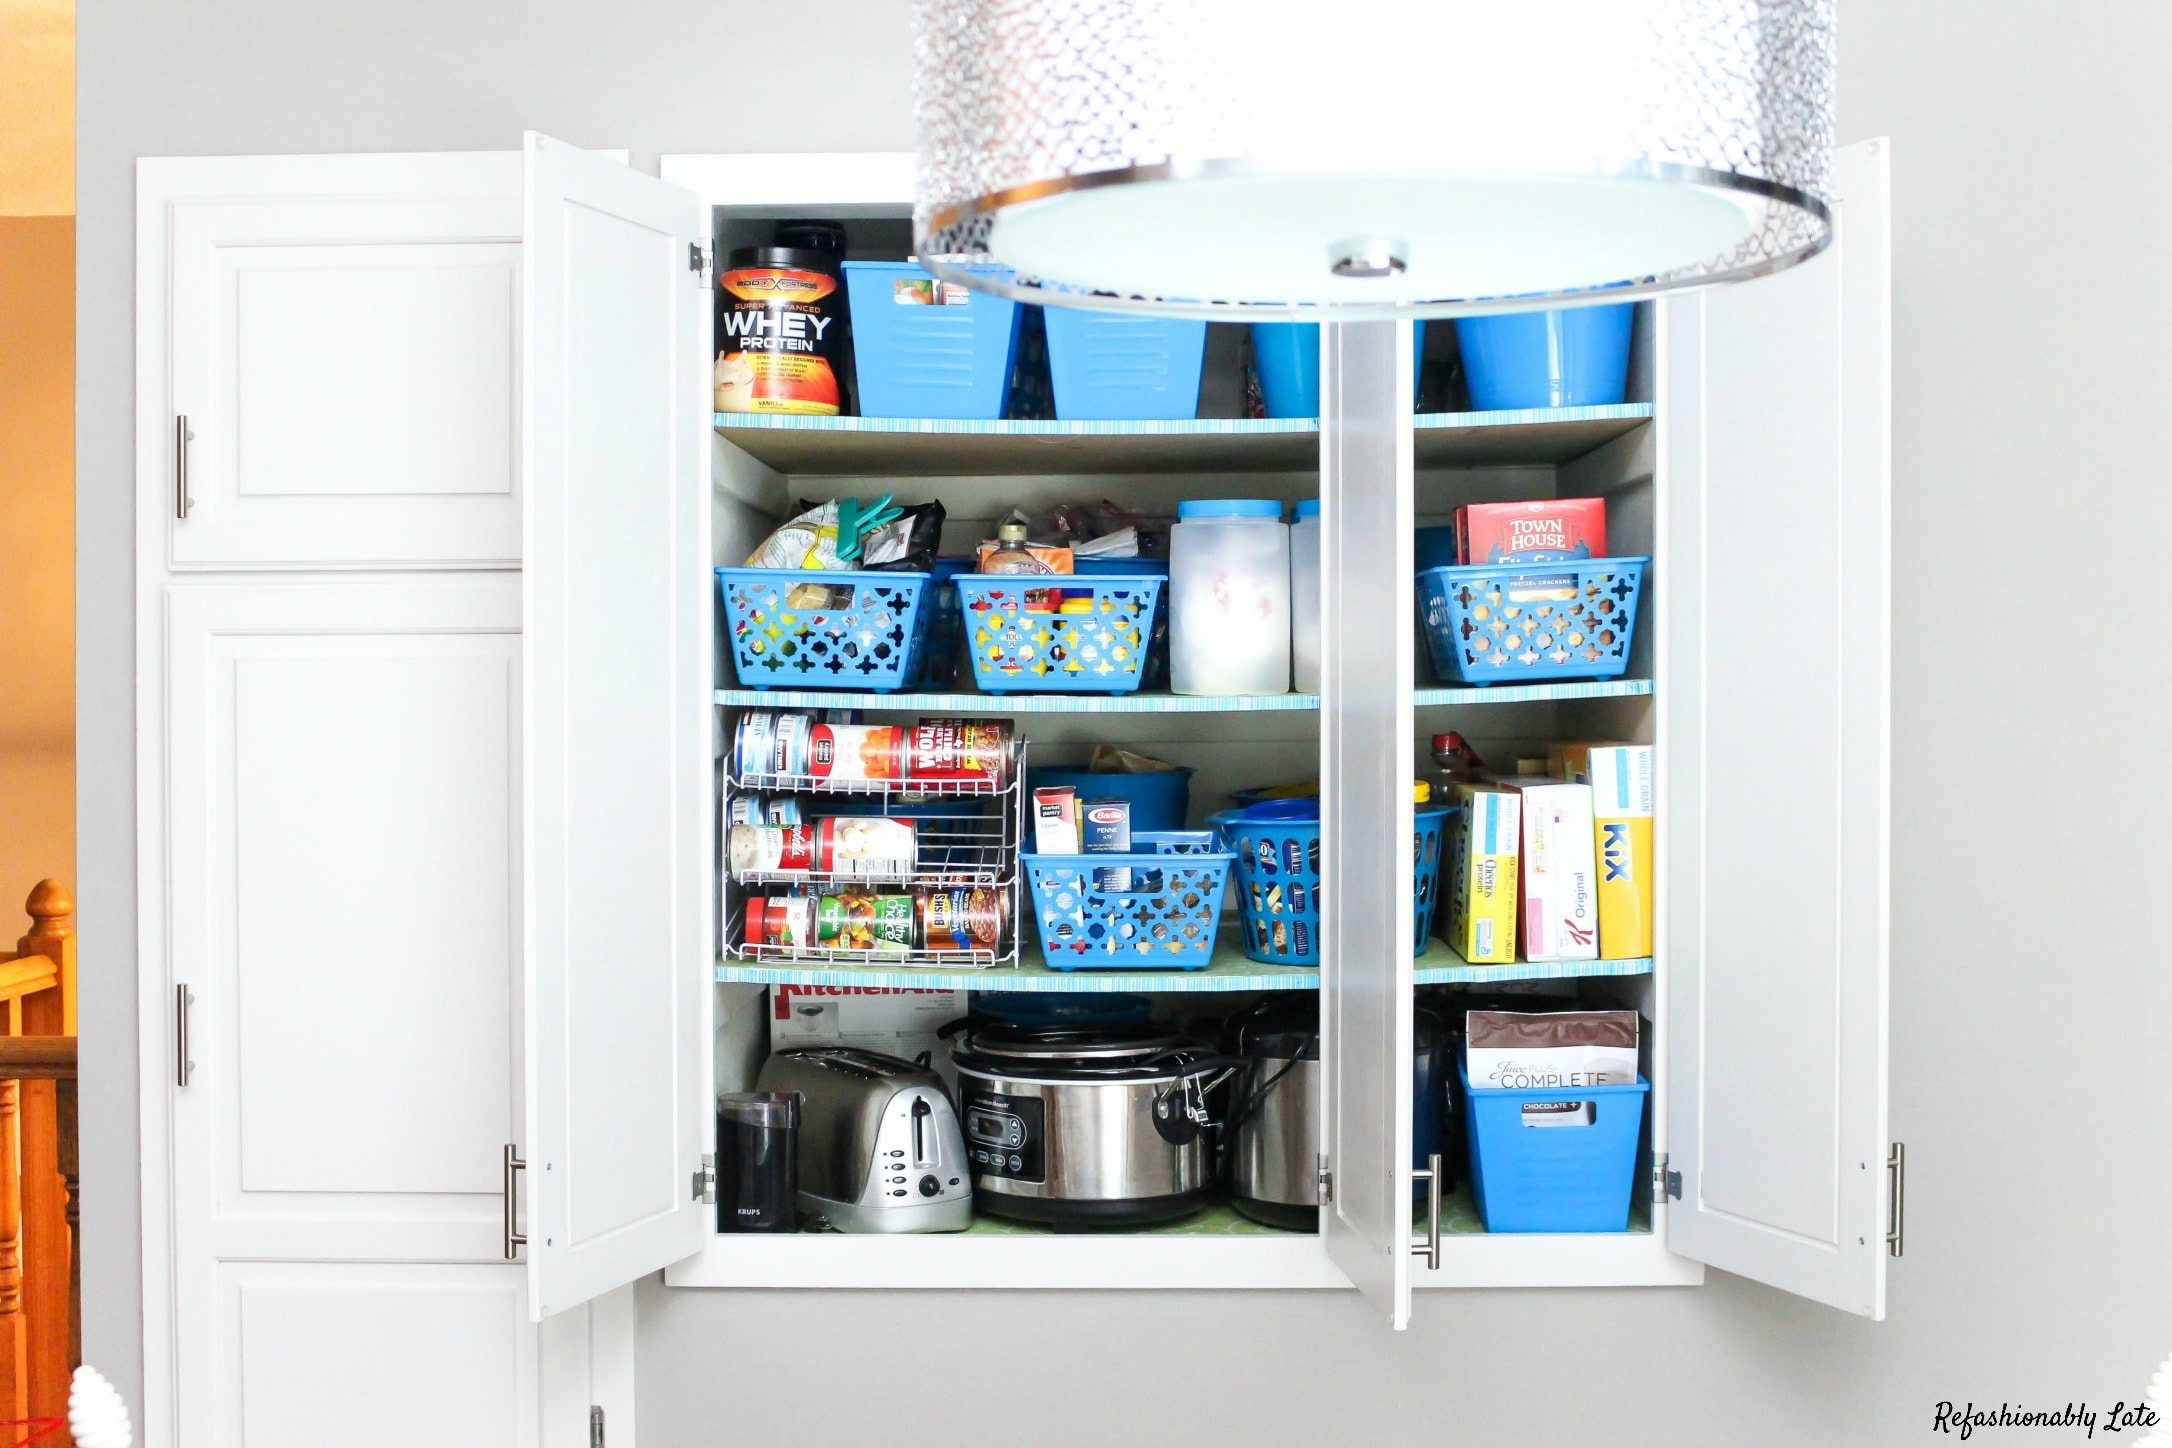 white cabinet doors open looking into organized pantry with dollar store blue bins